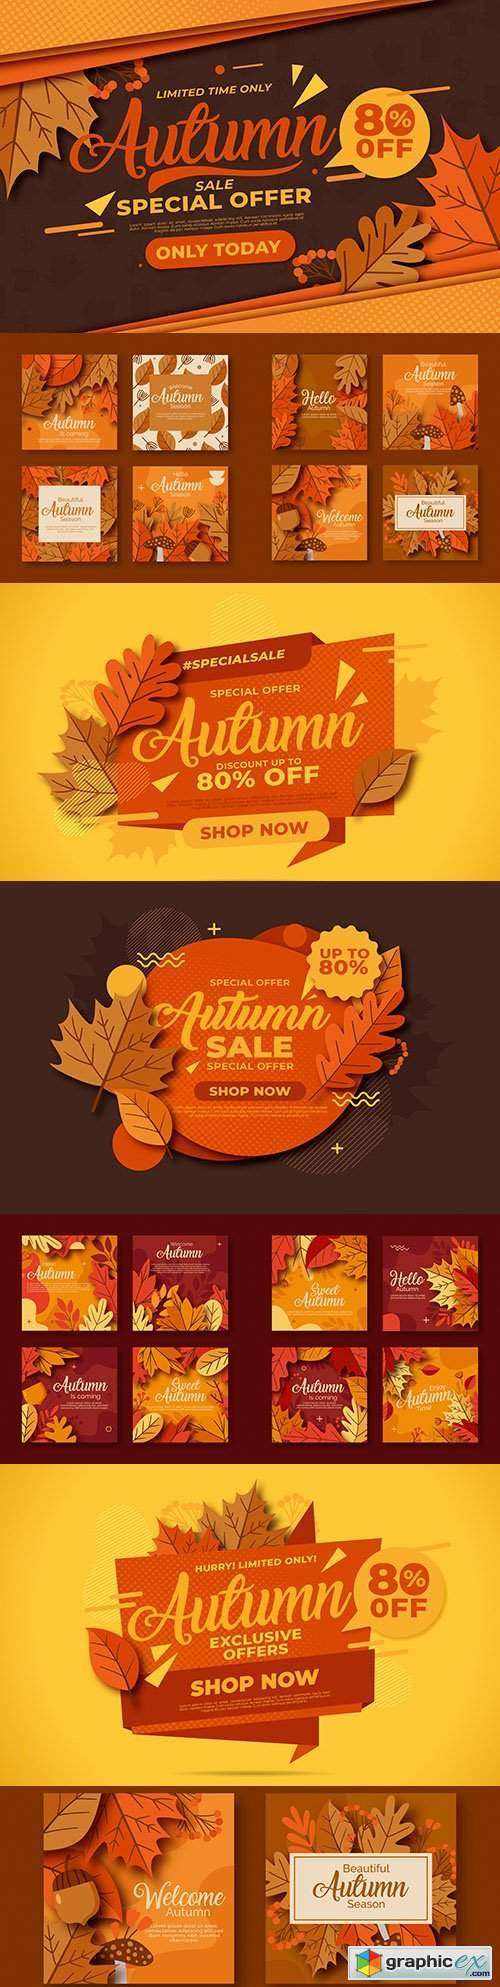 Vintage autumn sale and collection of cards with bright leaves